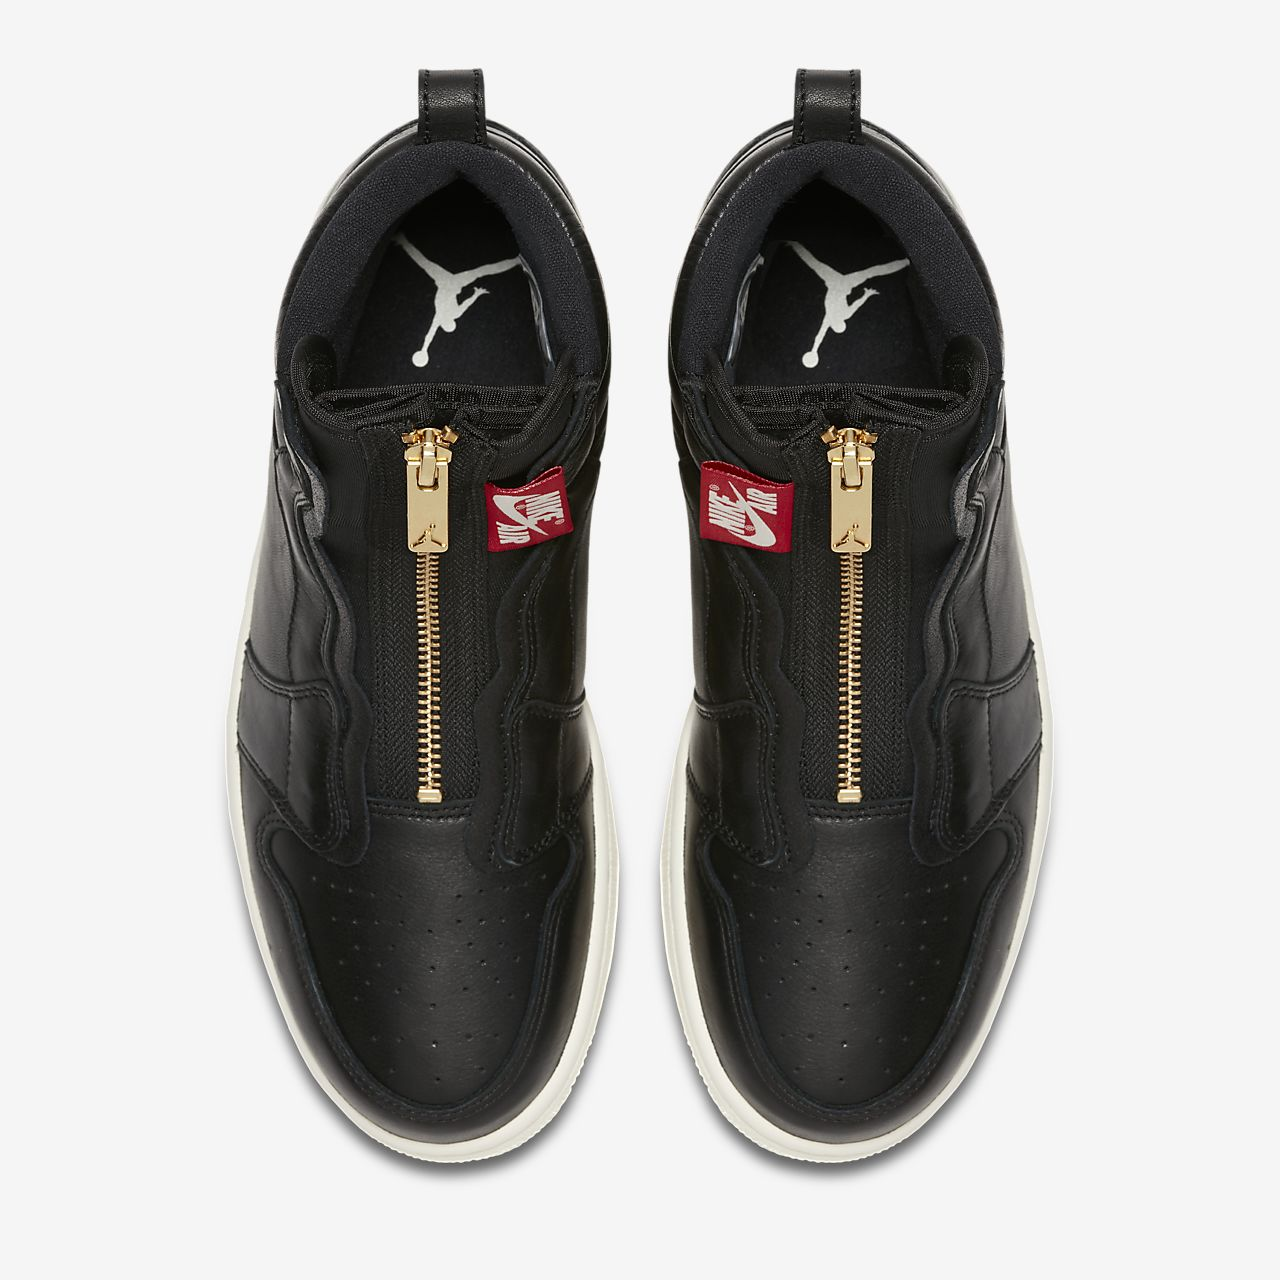 a0c3355178d0 Air Jordan 1 High Zip Women s Shoe. Nike.com GB